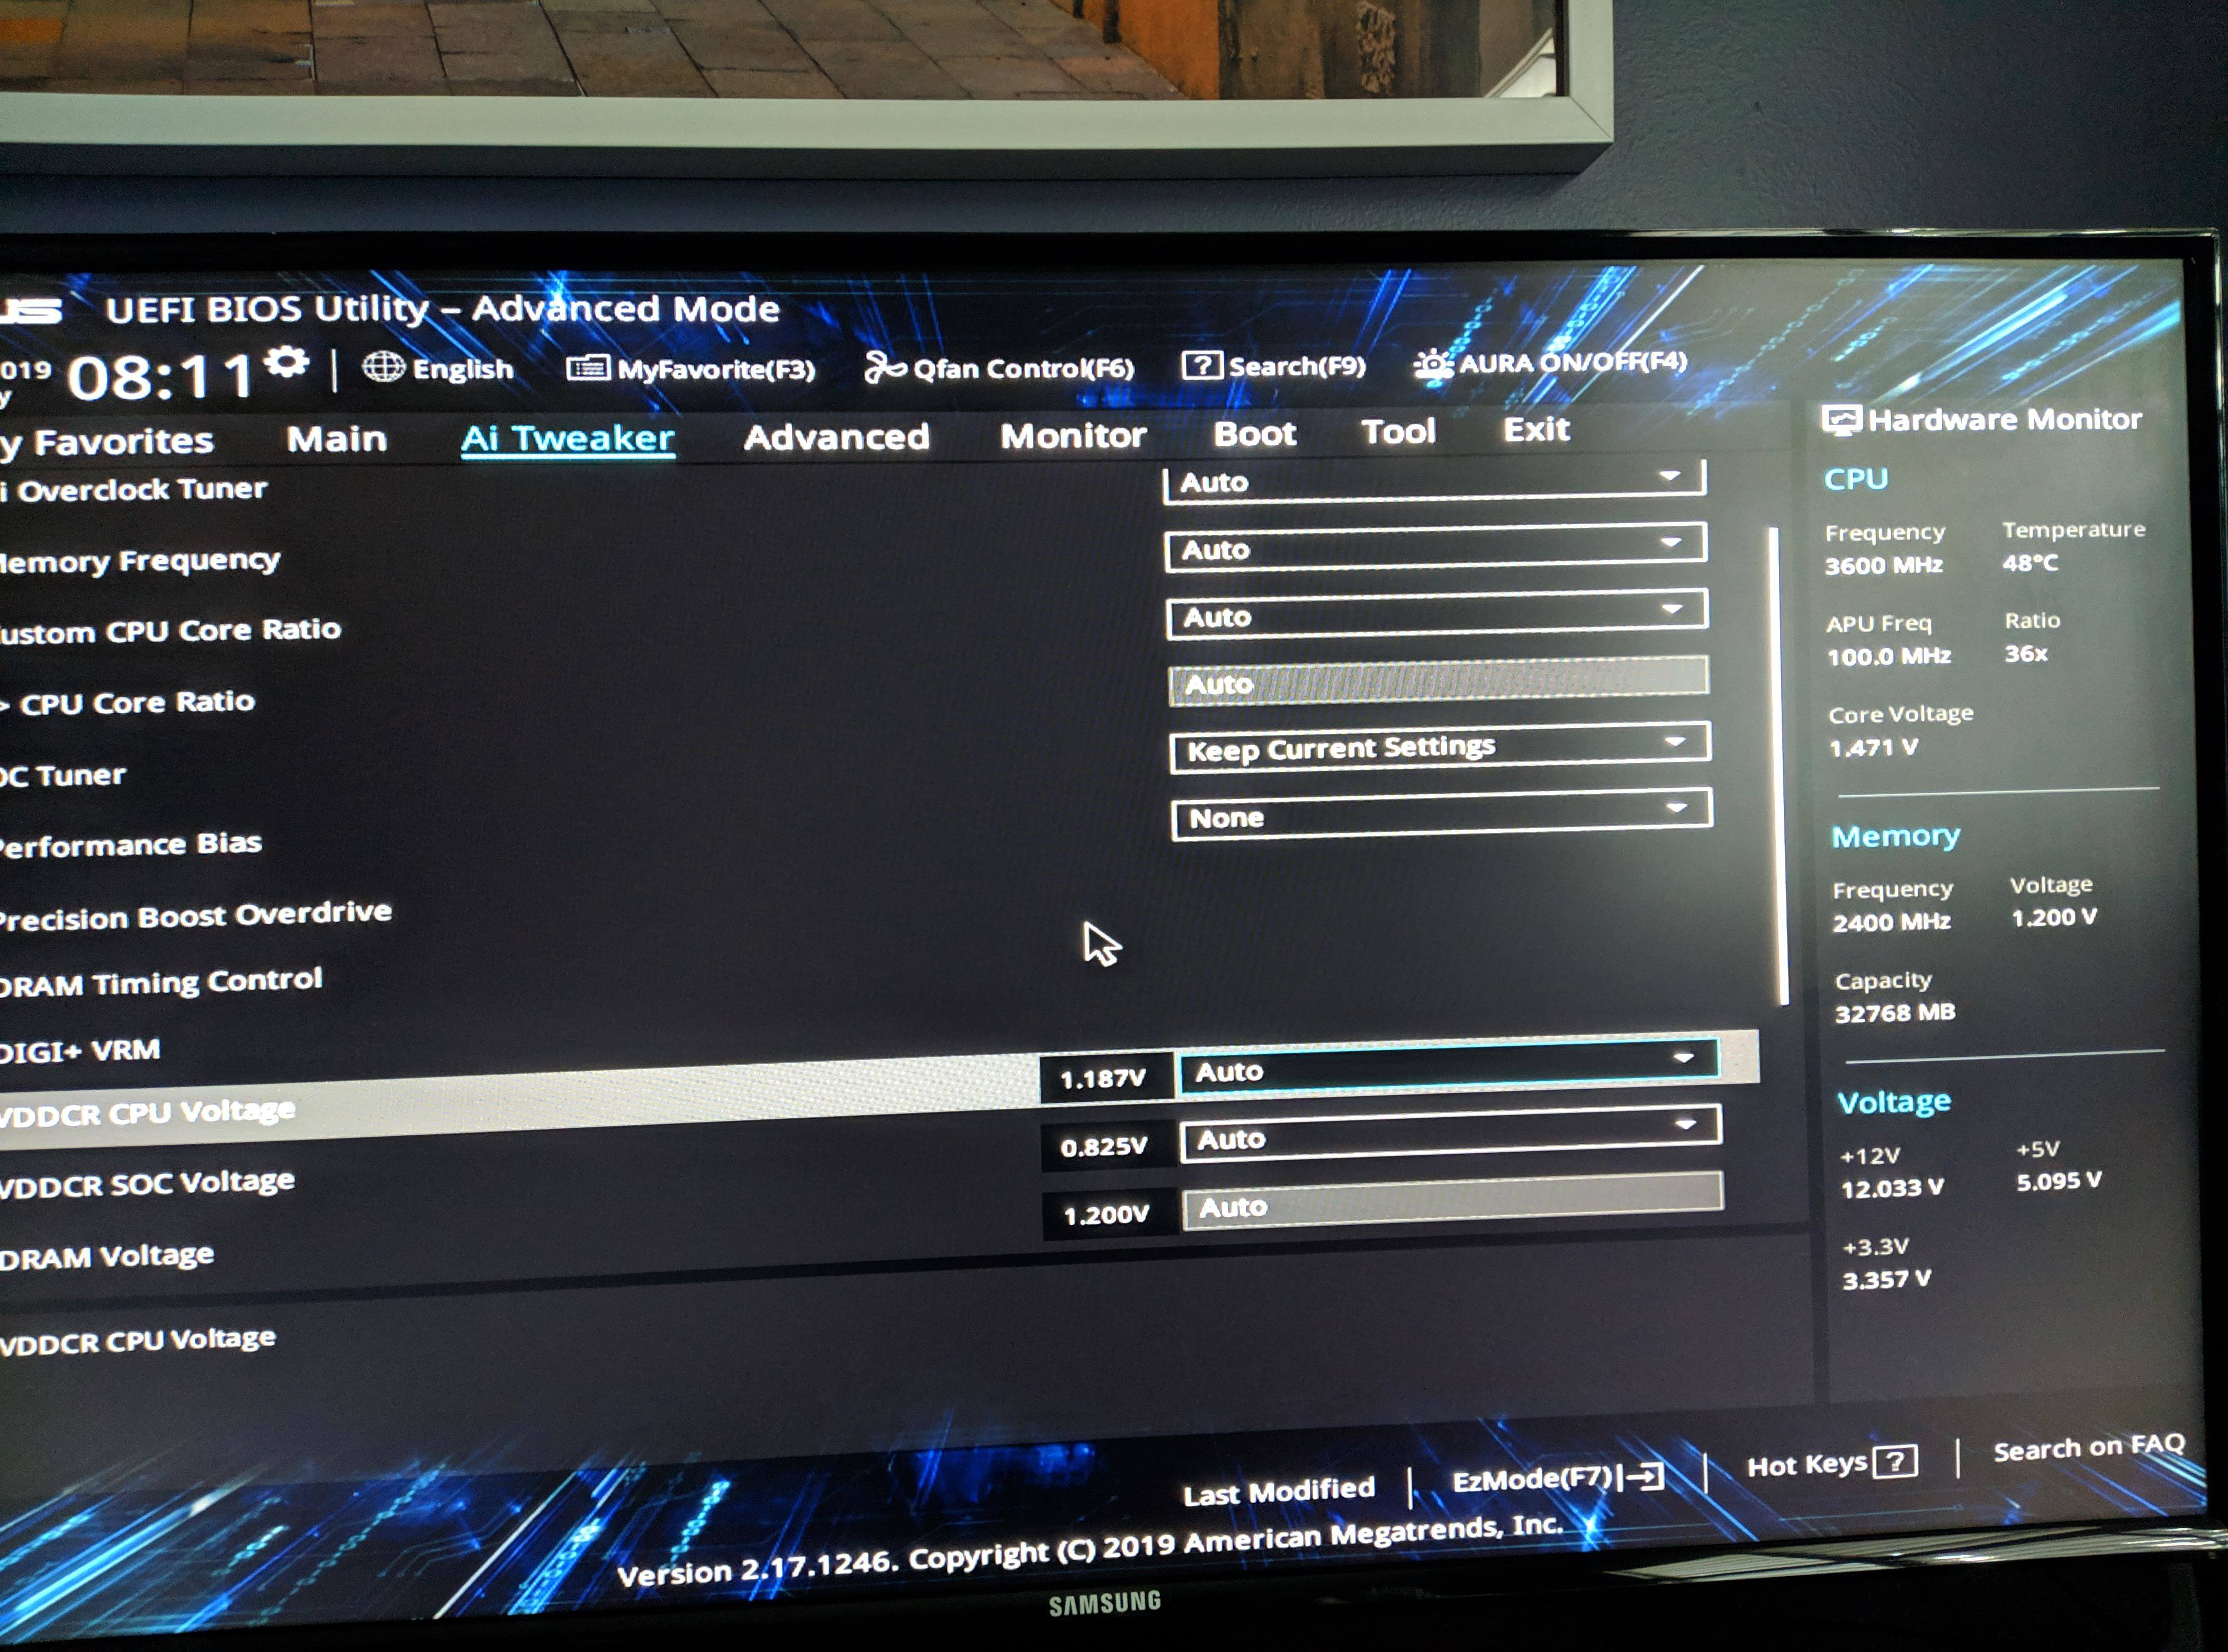 ryzen 2600x vcore voltage high - CPUs, Motherboards, and Memory